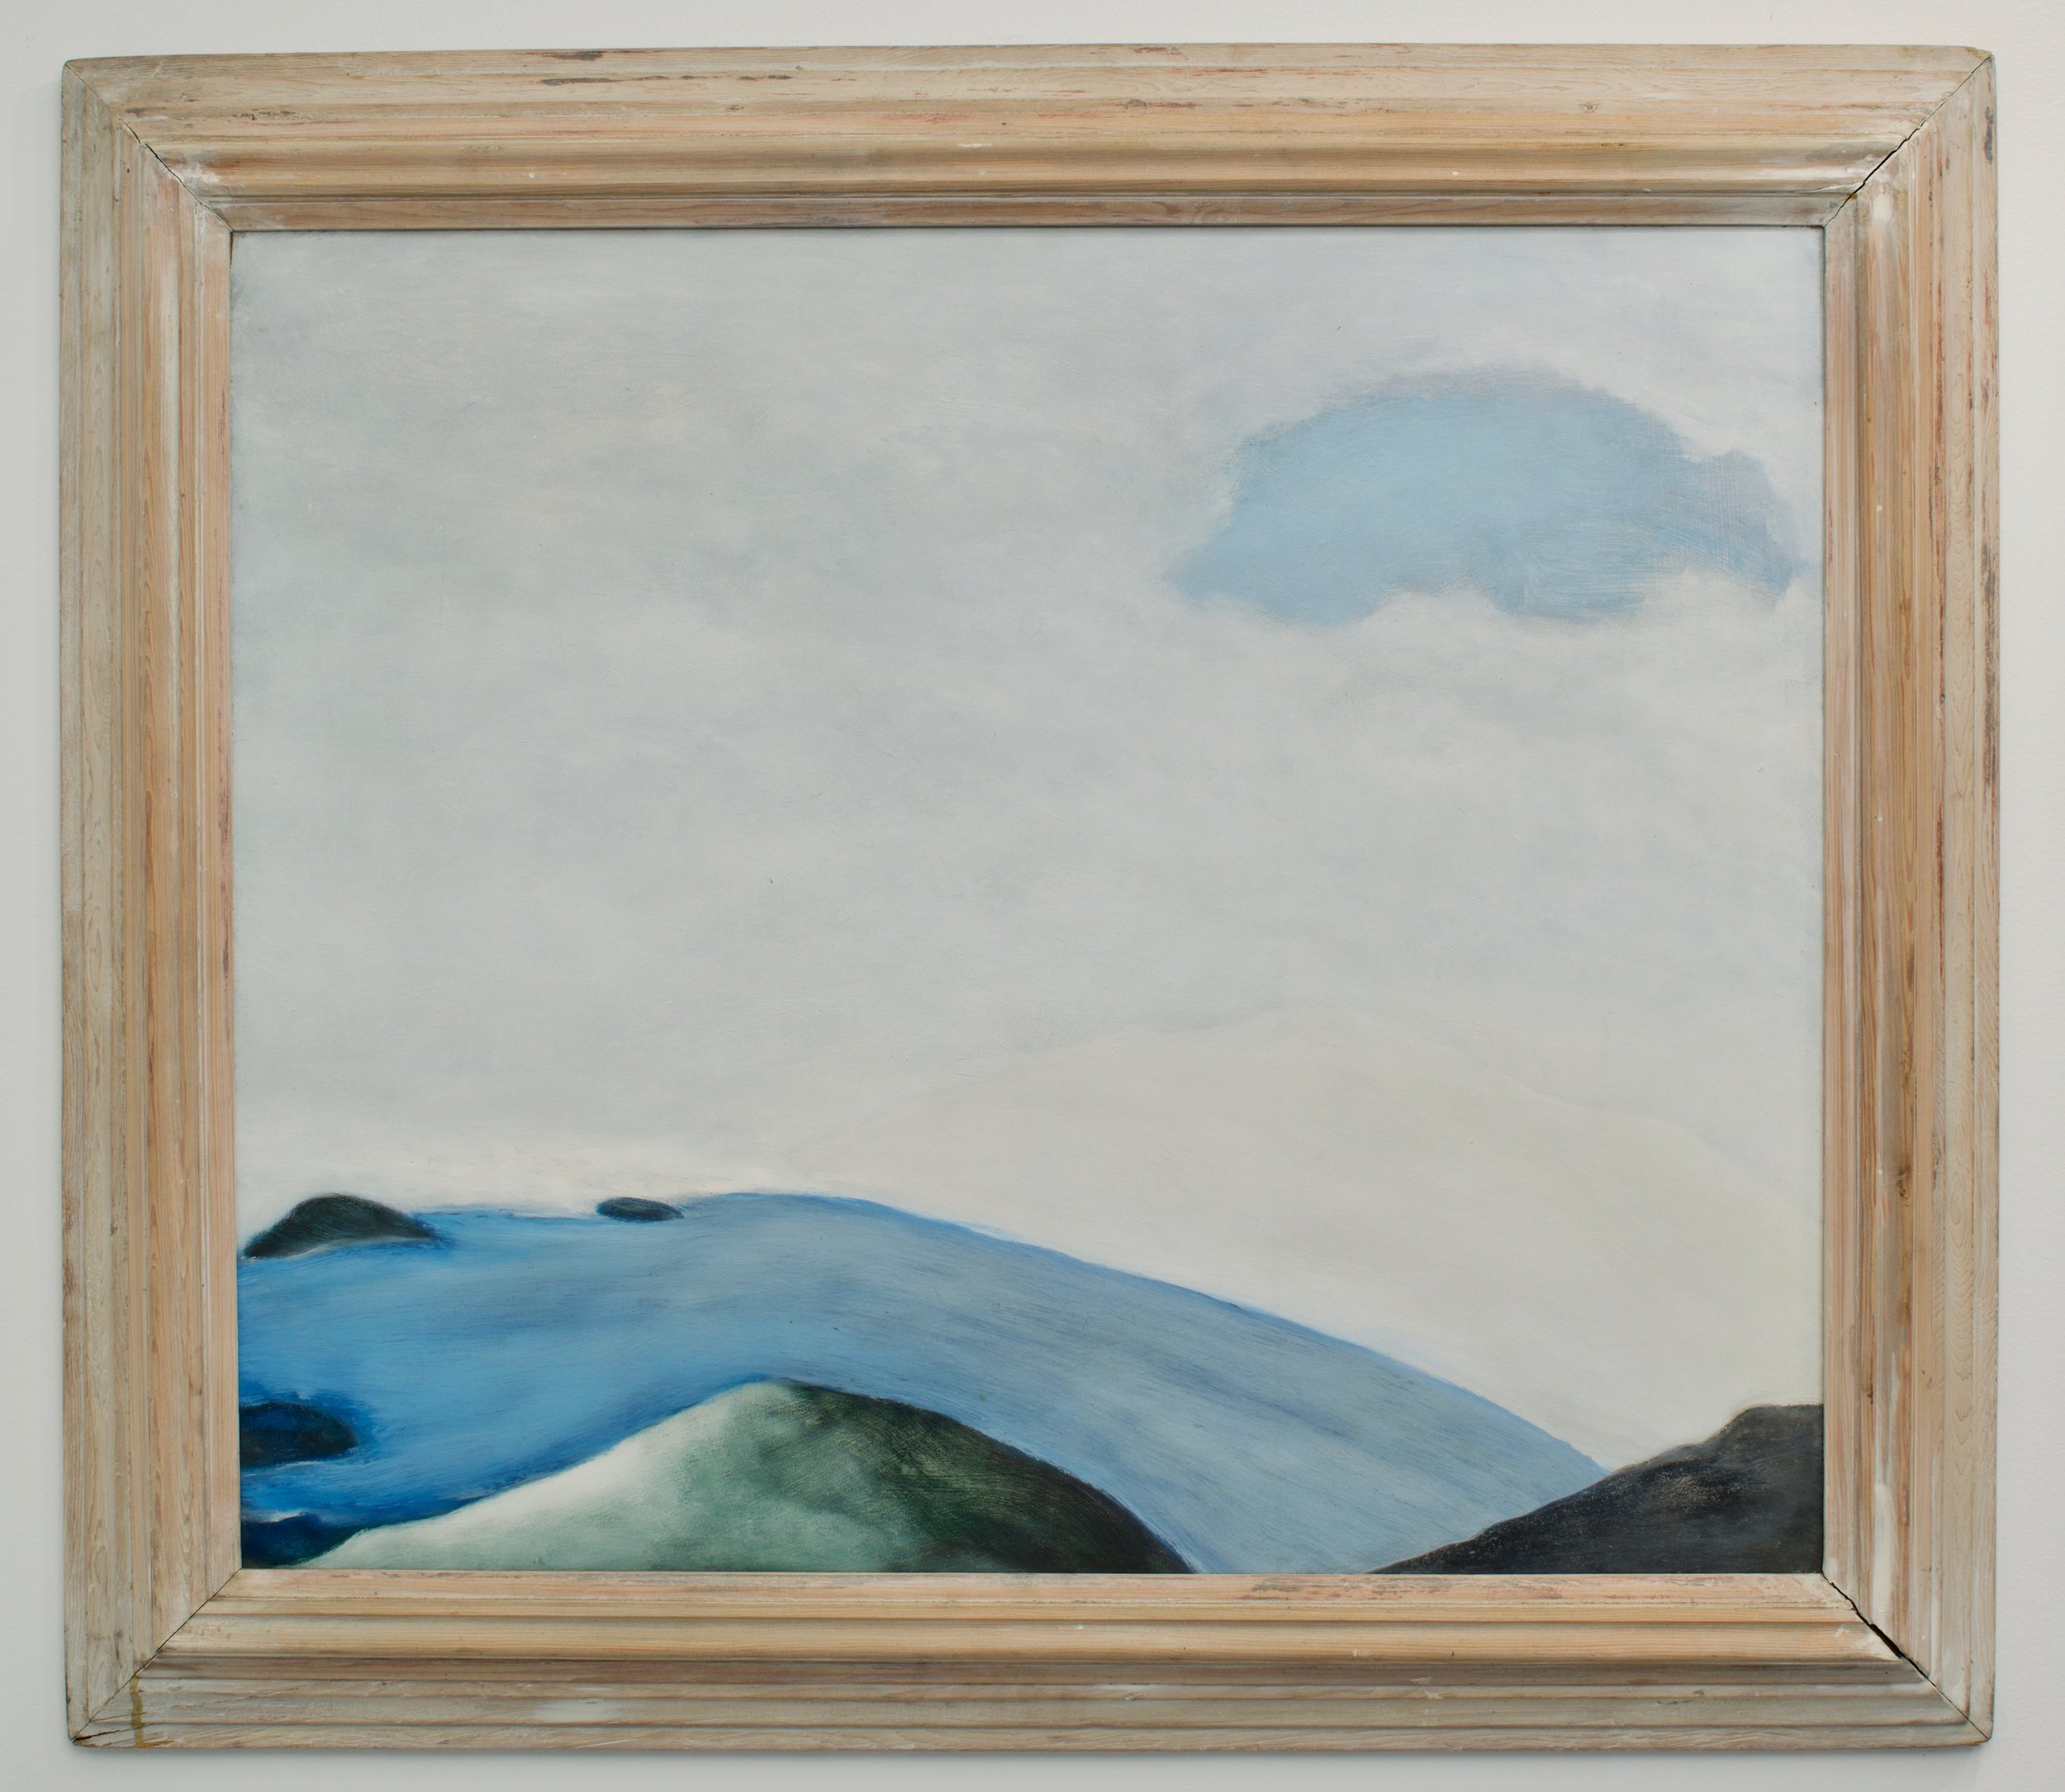 Tim Hoffman, Winter Wall, 1995. Oil on panel, 35 x 30 inches (framed).